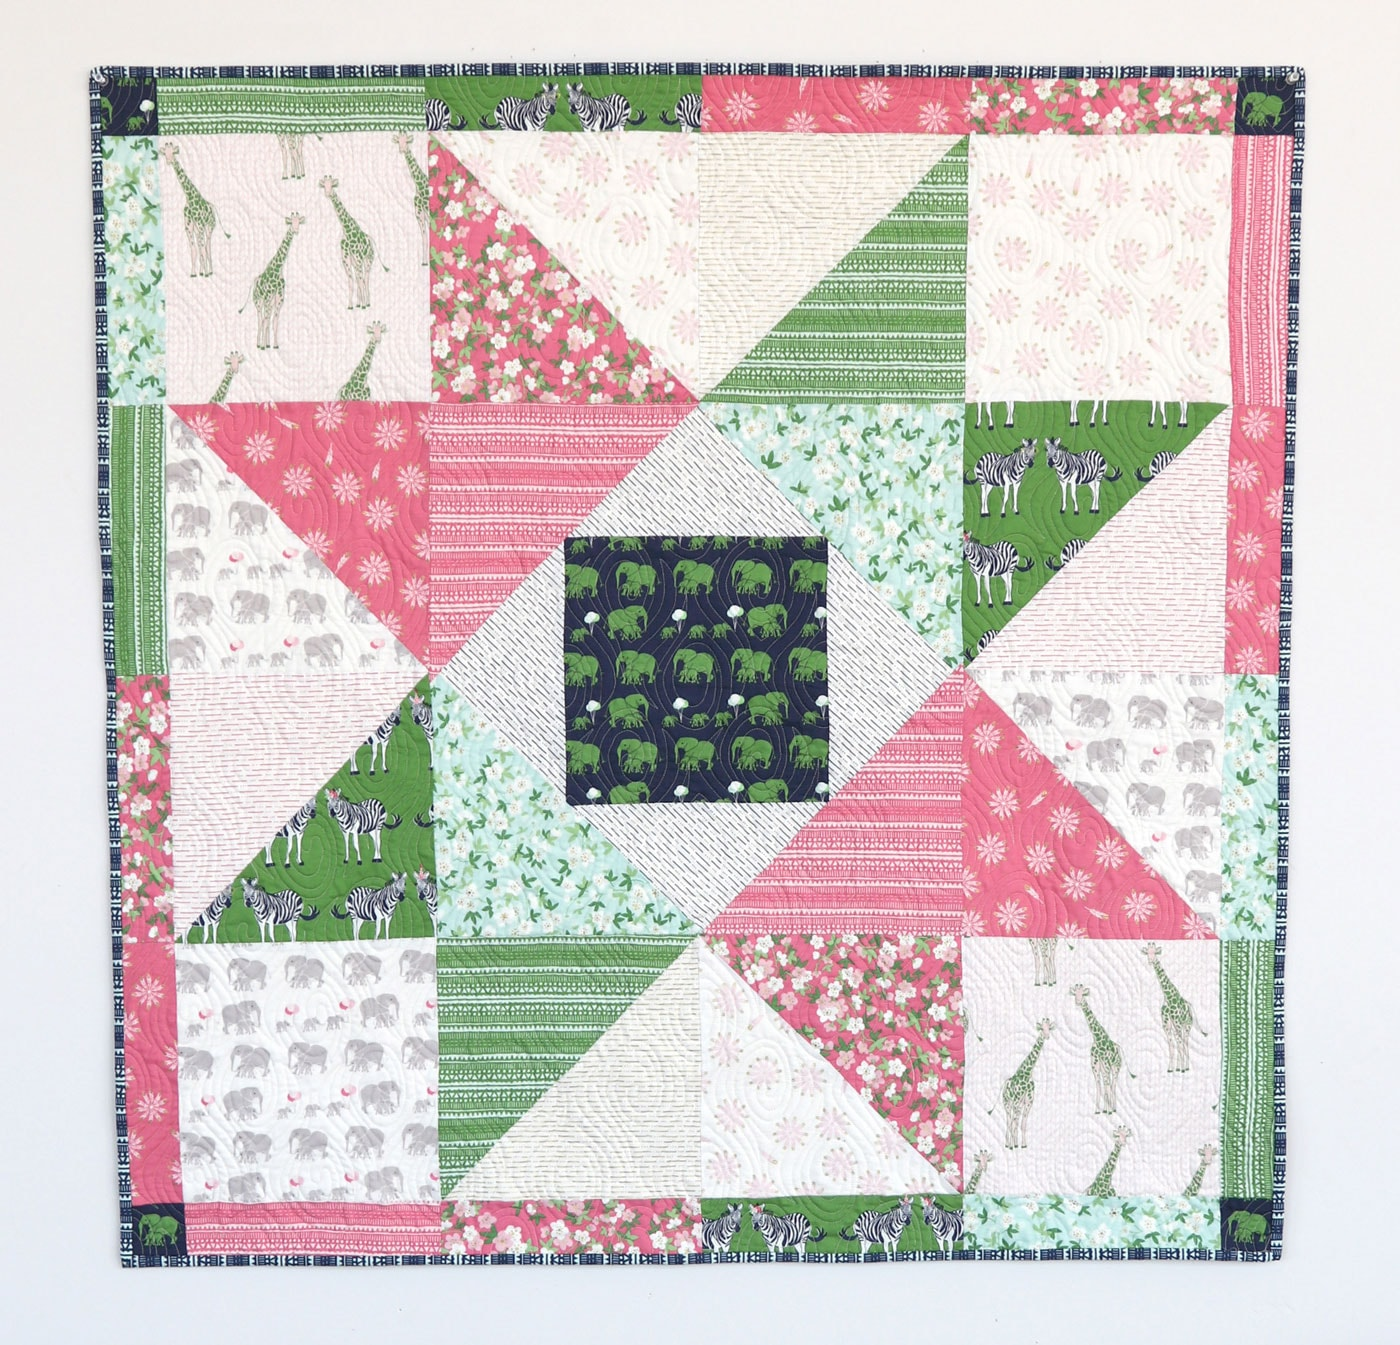 free baby quilt patterns 25+ Baby Quilt Patterns   The Polka Dot Chair free baby quilt patterns